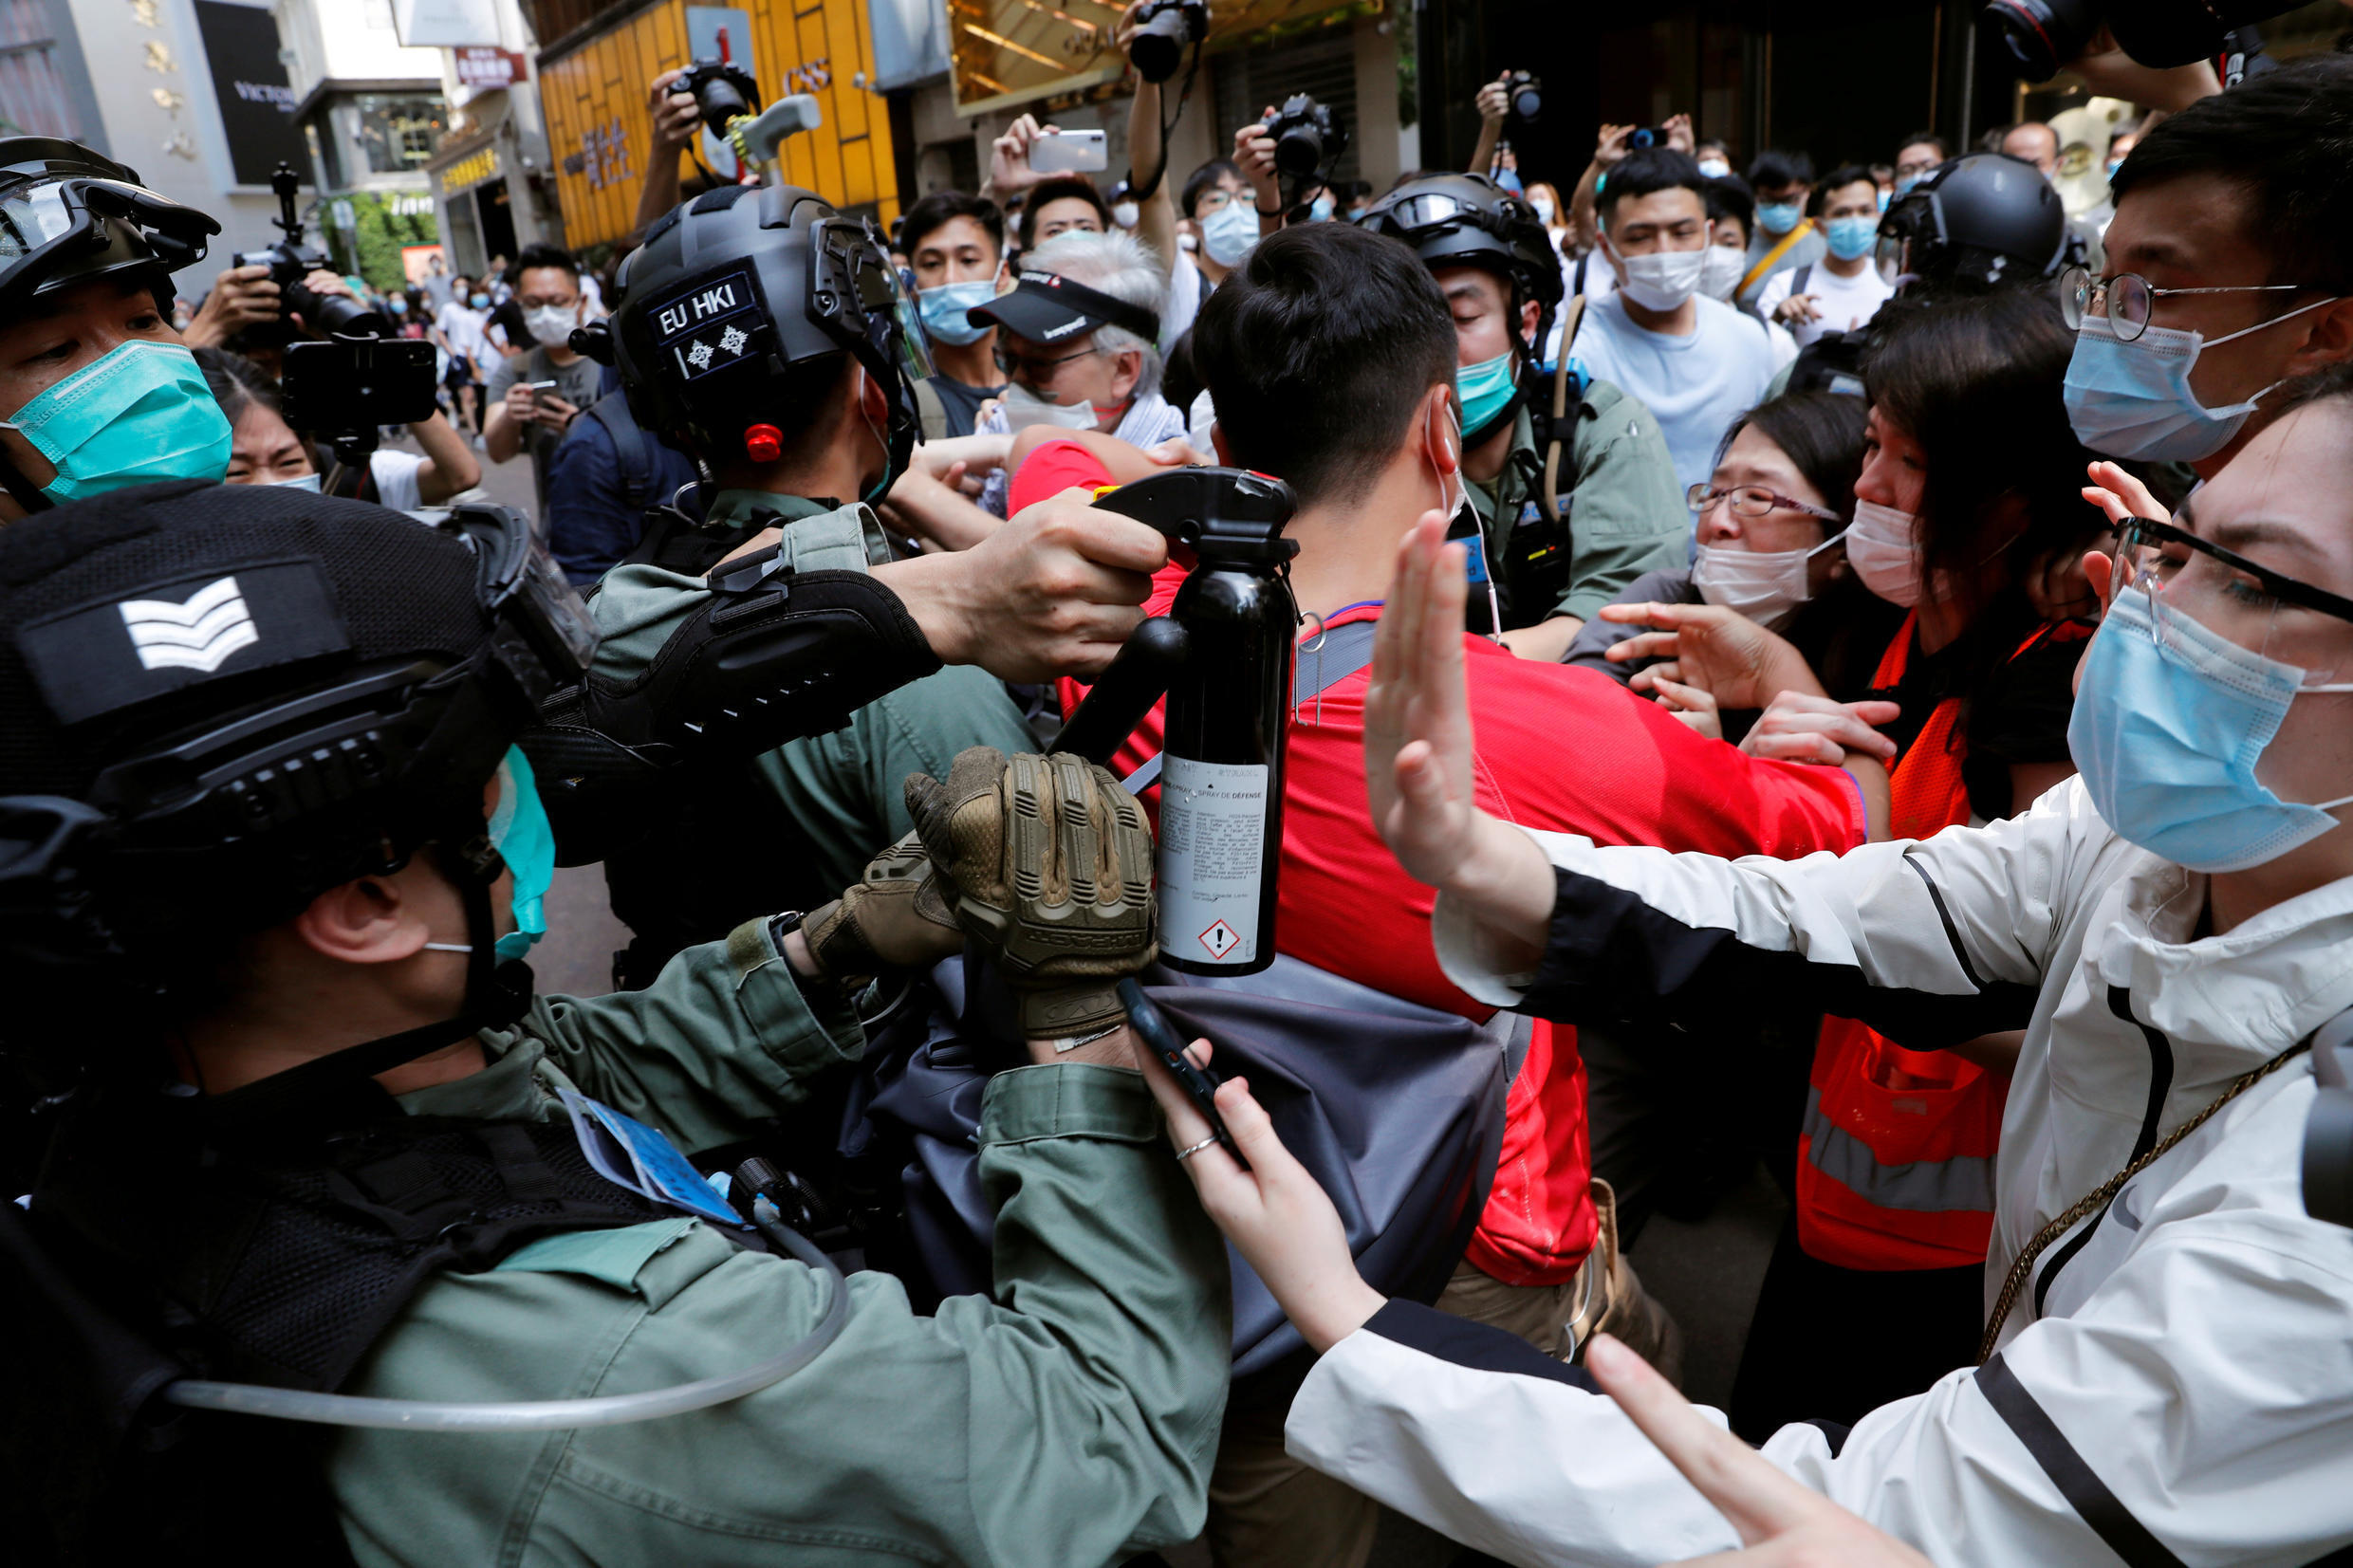 Pro-democracy demonstrators scuffle with riot police during a lunchtime protest as a second reading of a controversial national anthem law takes place in Hong Kong, China on May 27, 2020.